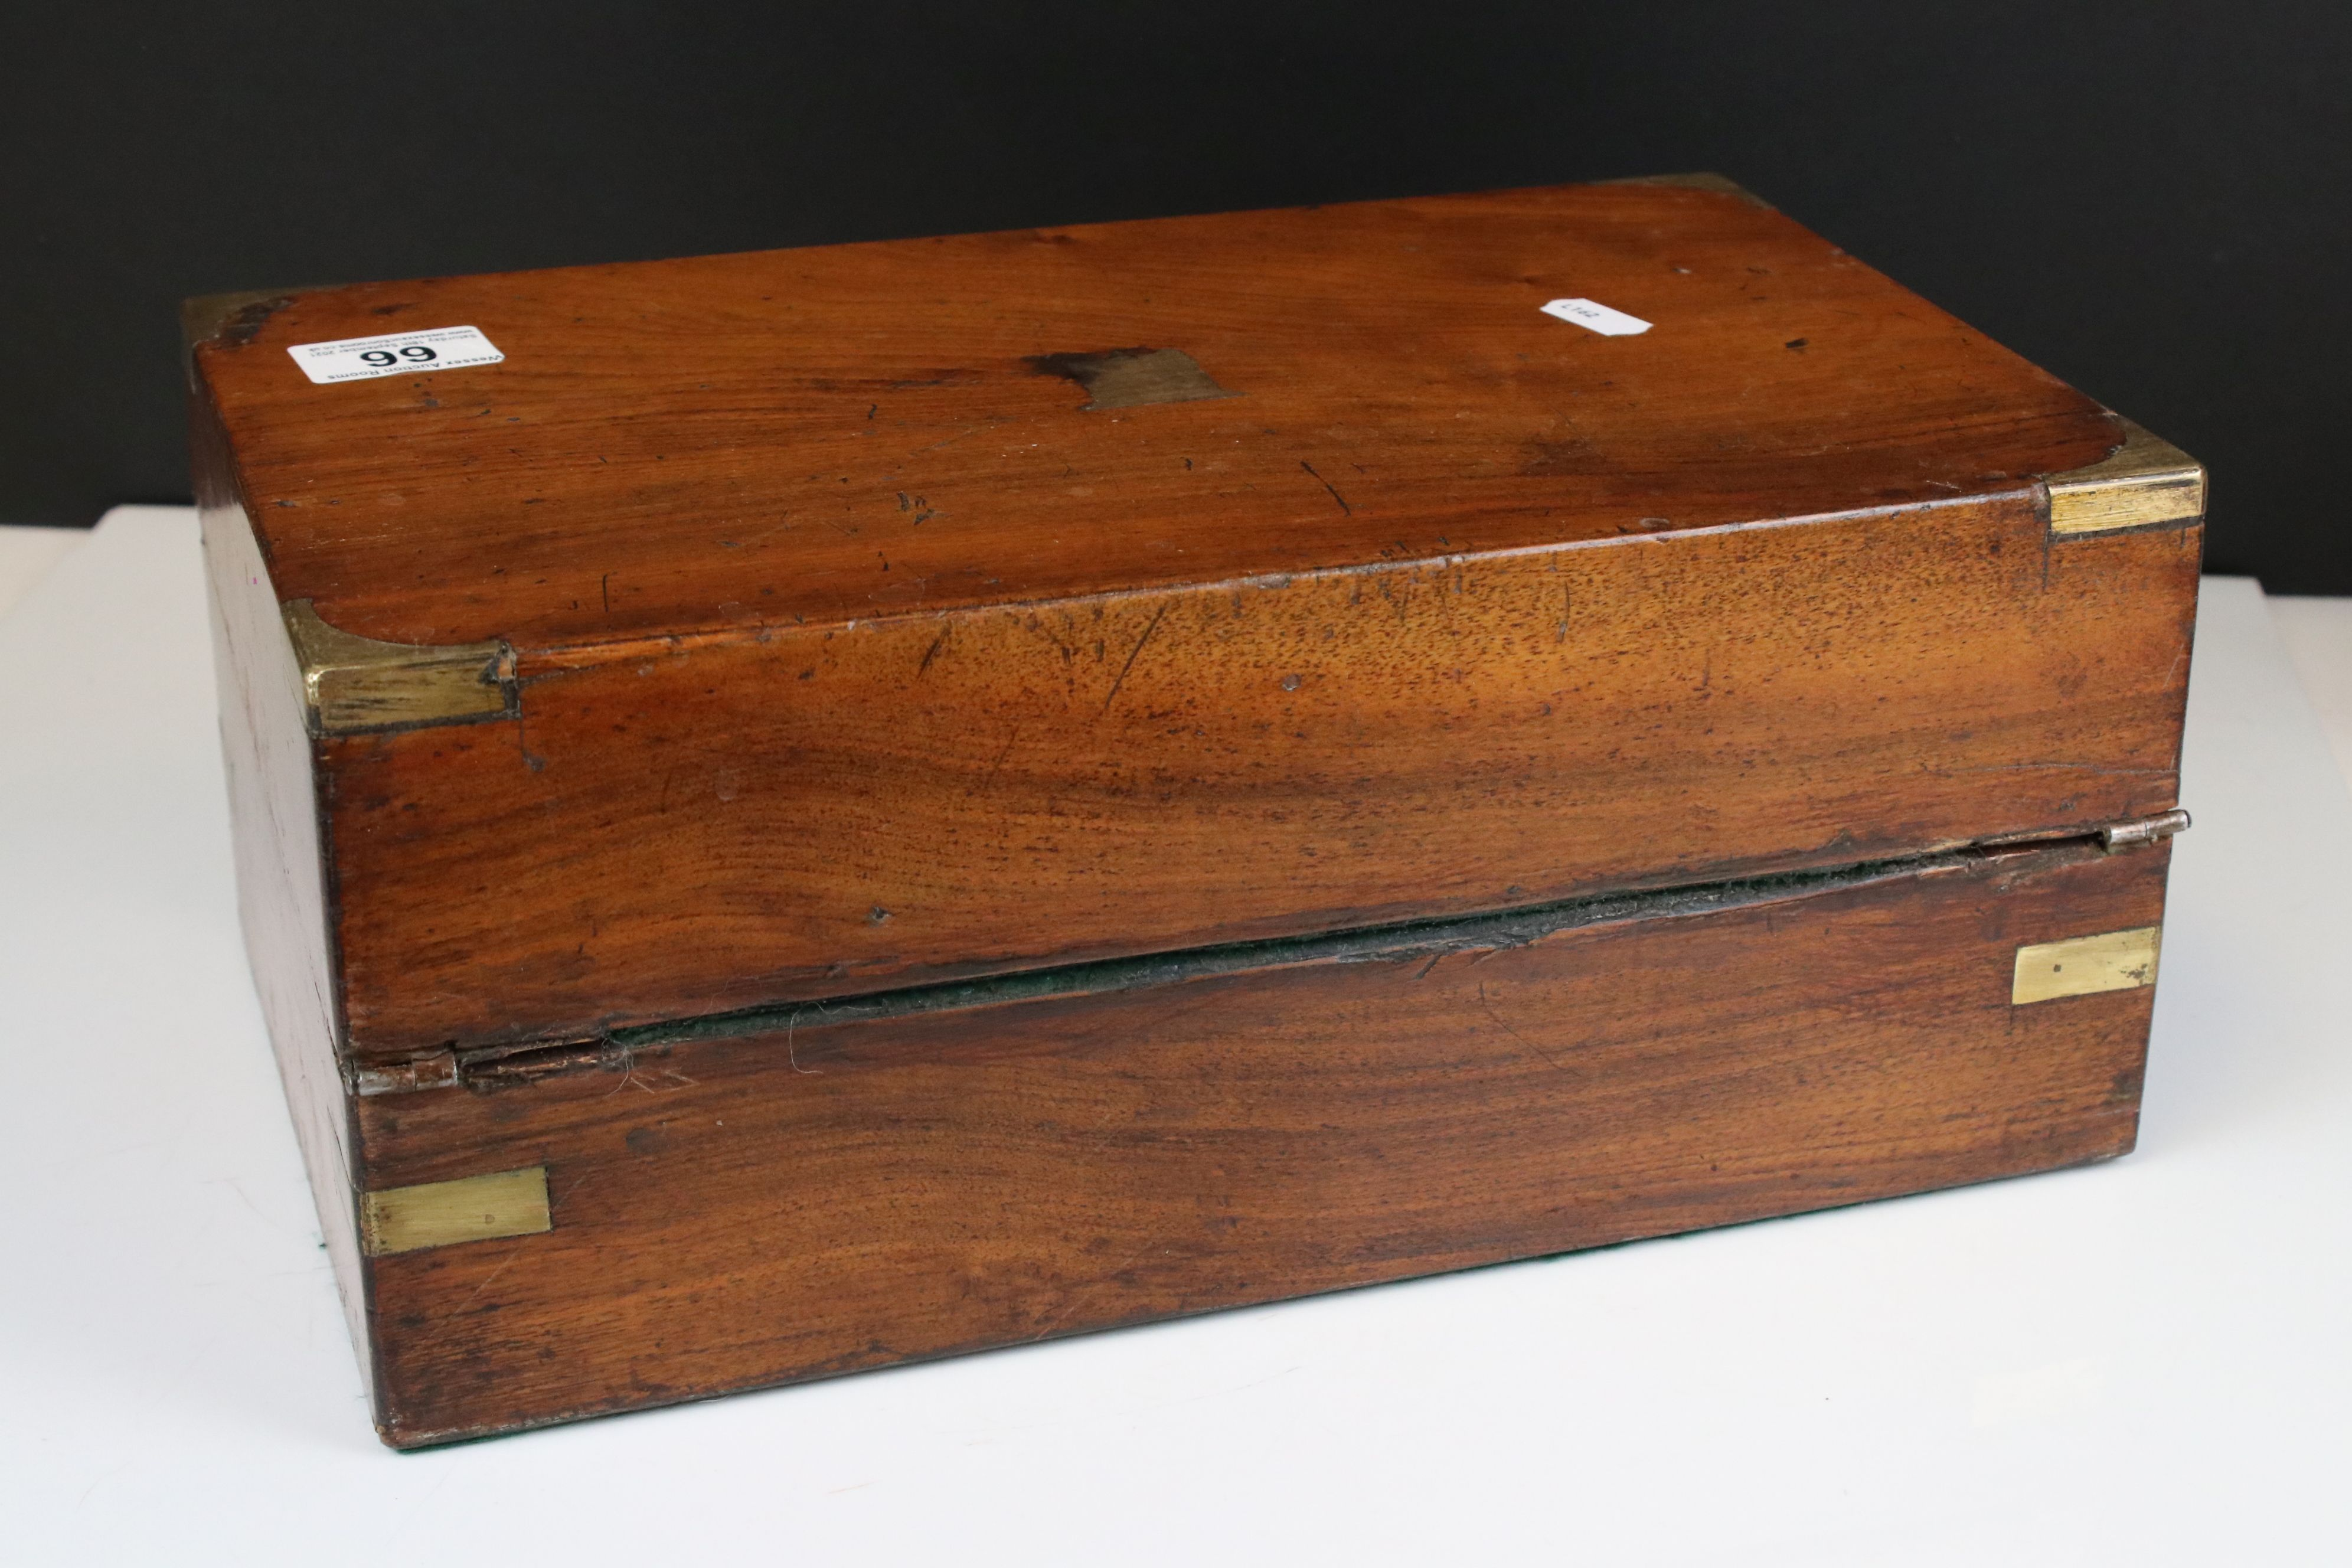 19th century Mahogany and Brass Mounted Writing Slope Box, 35cms wide - Image 4 of 4